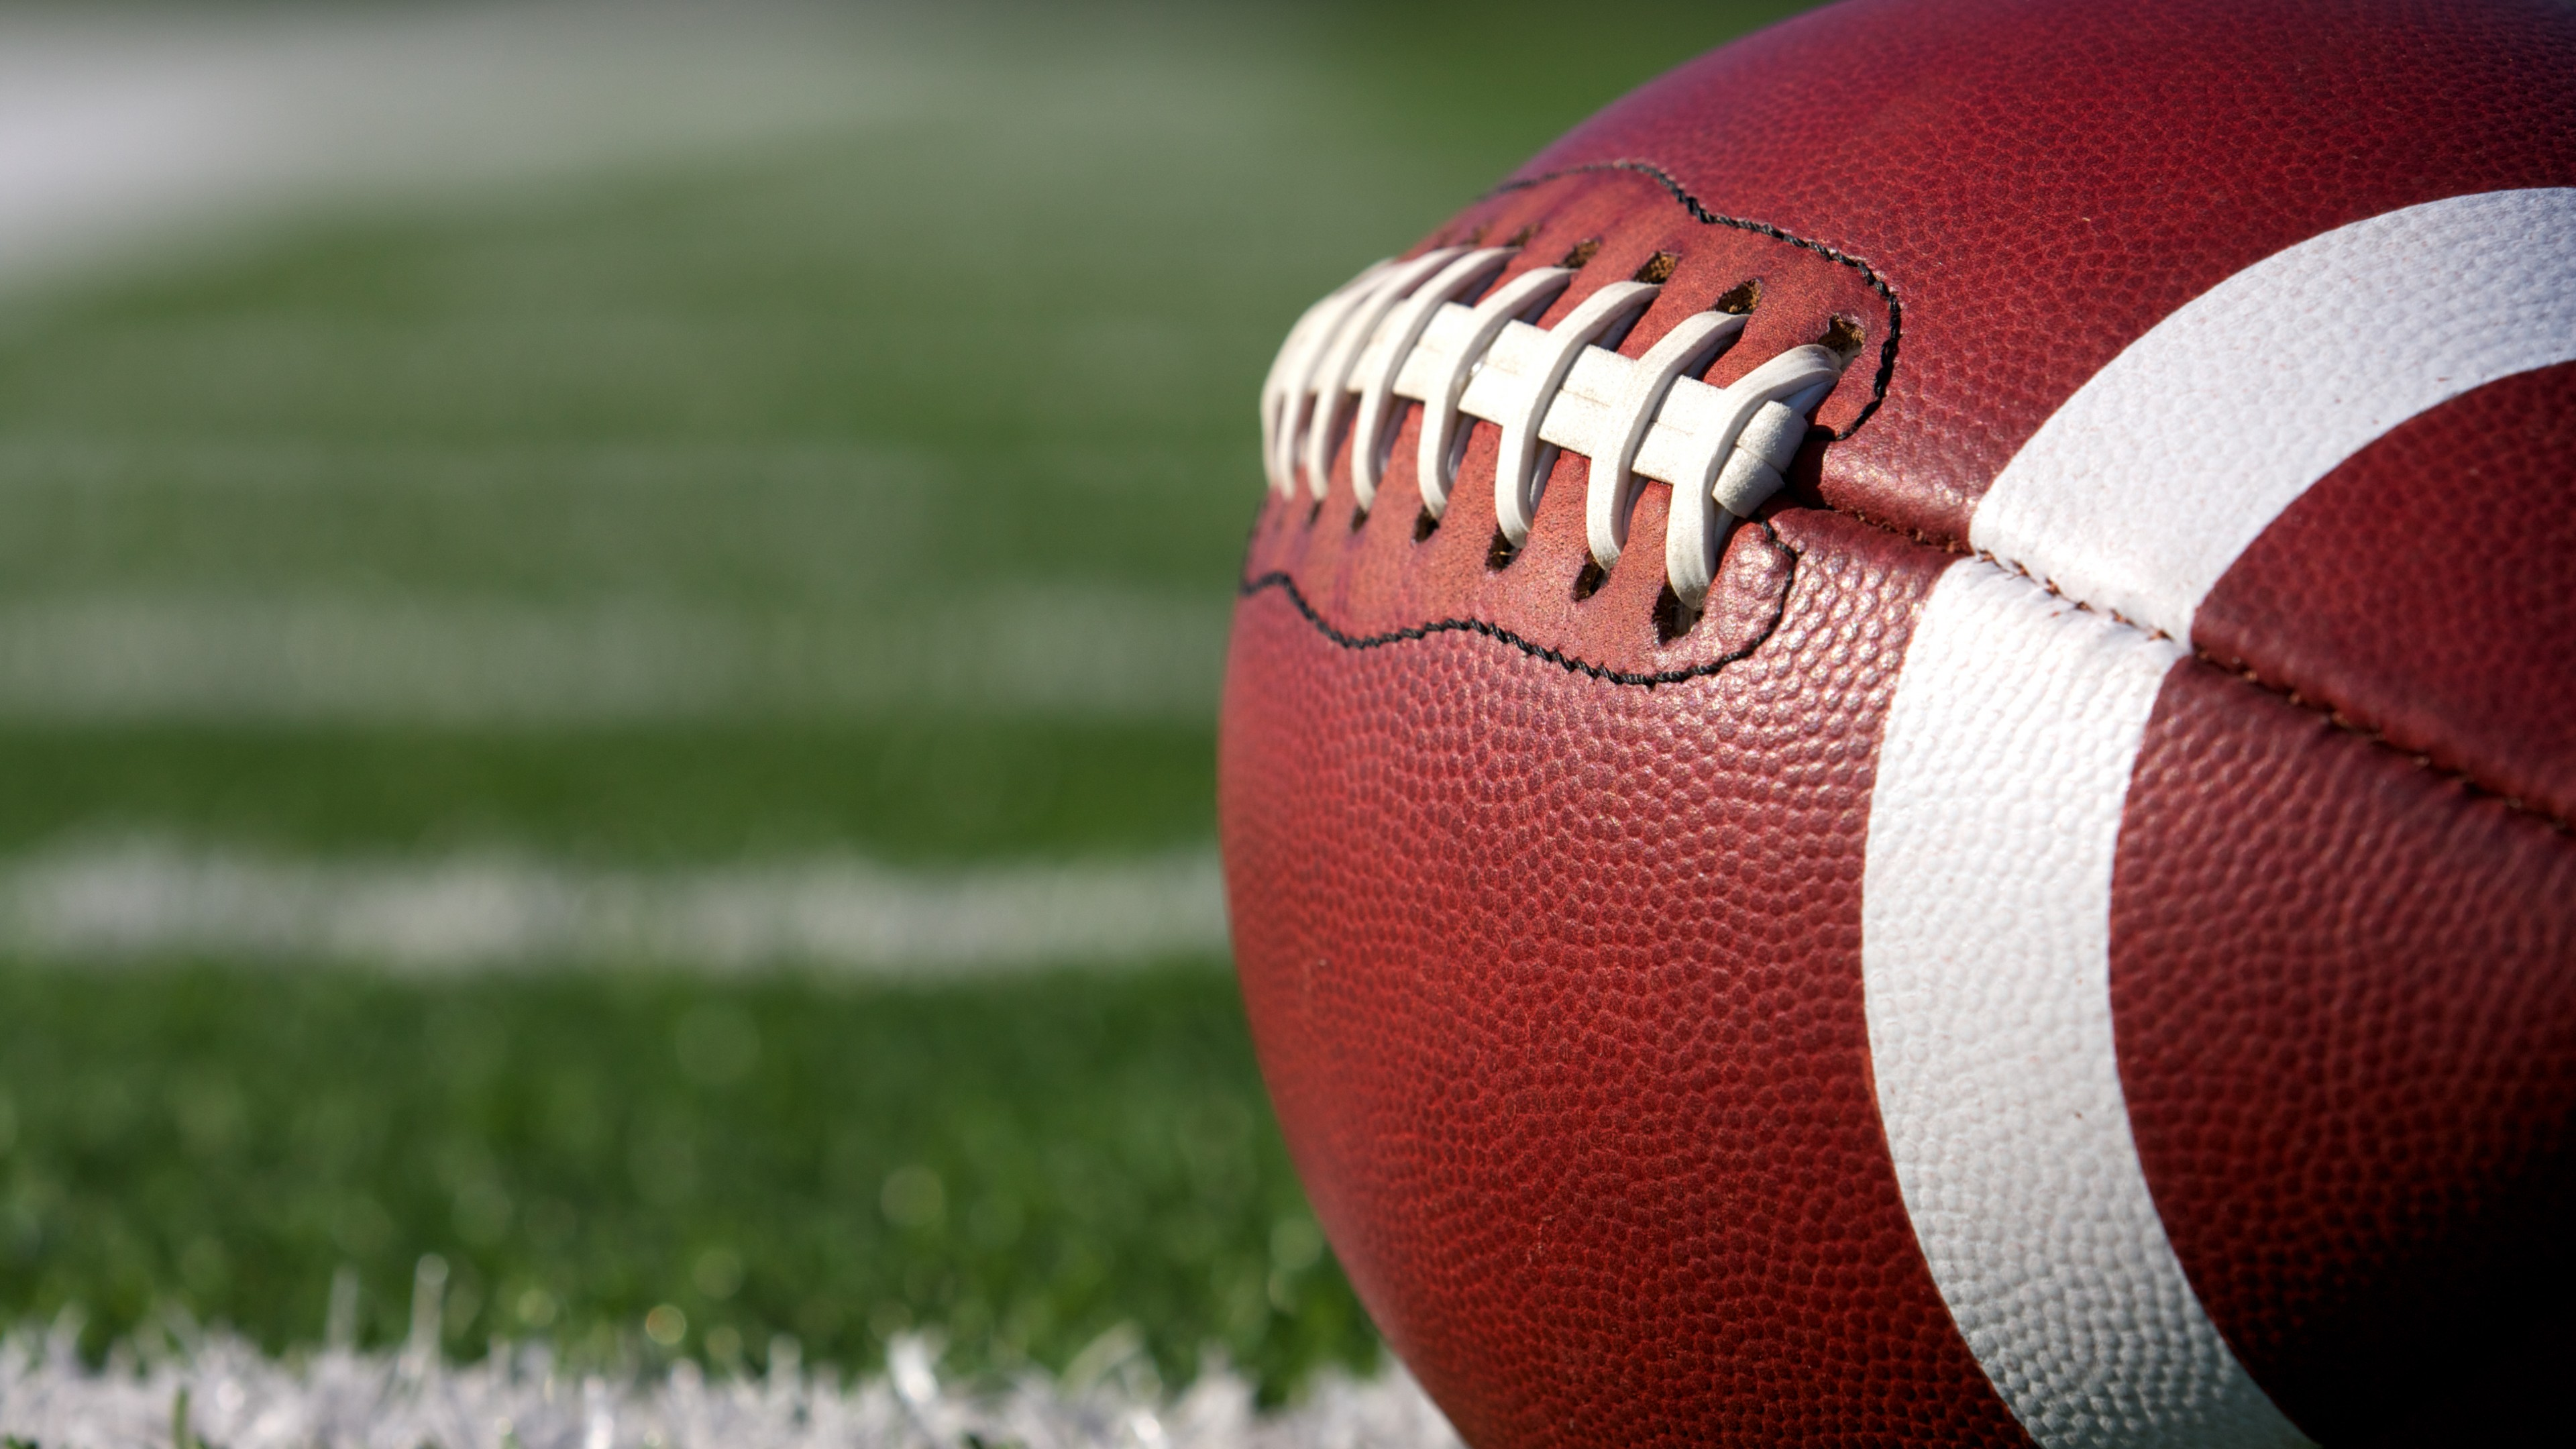 Super American Football Wallpapers Rugby Sports By